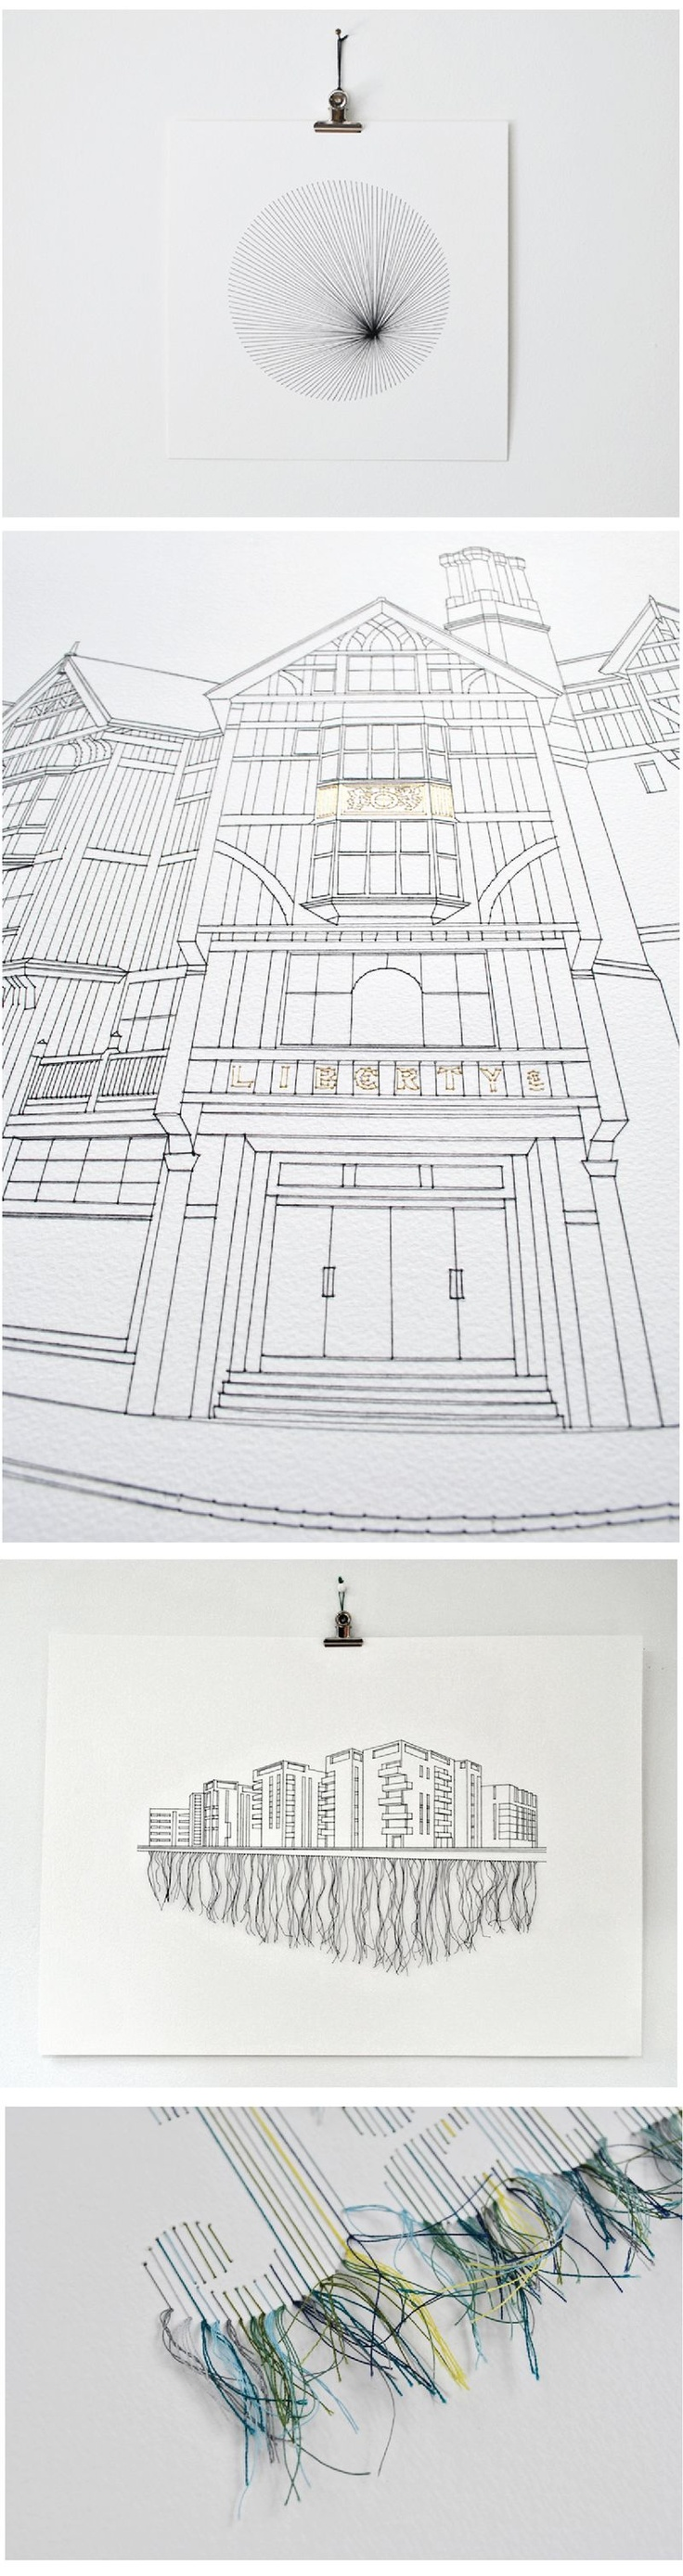 stitched illustrations created by British artist, Peter Crawley